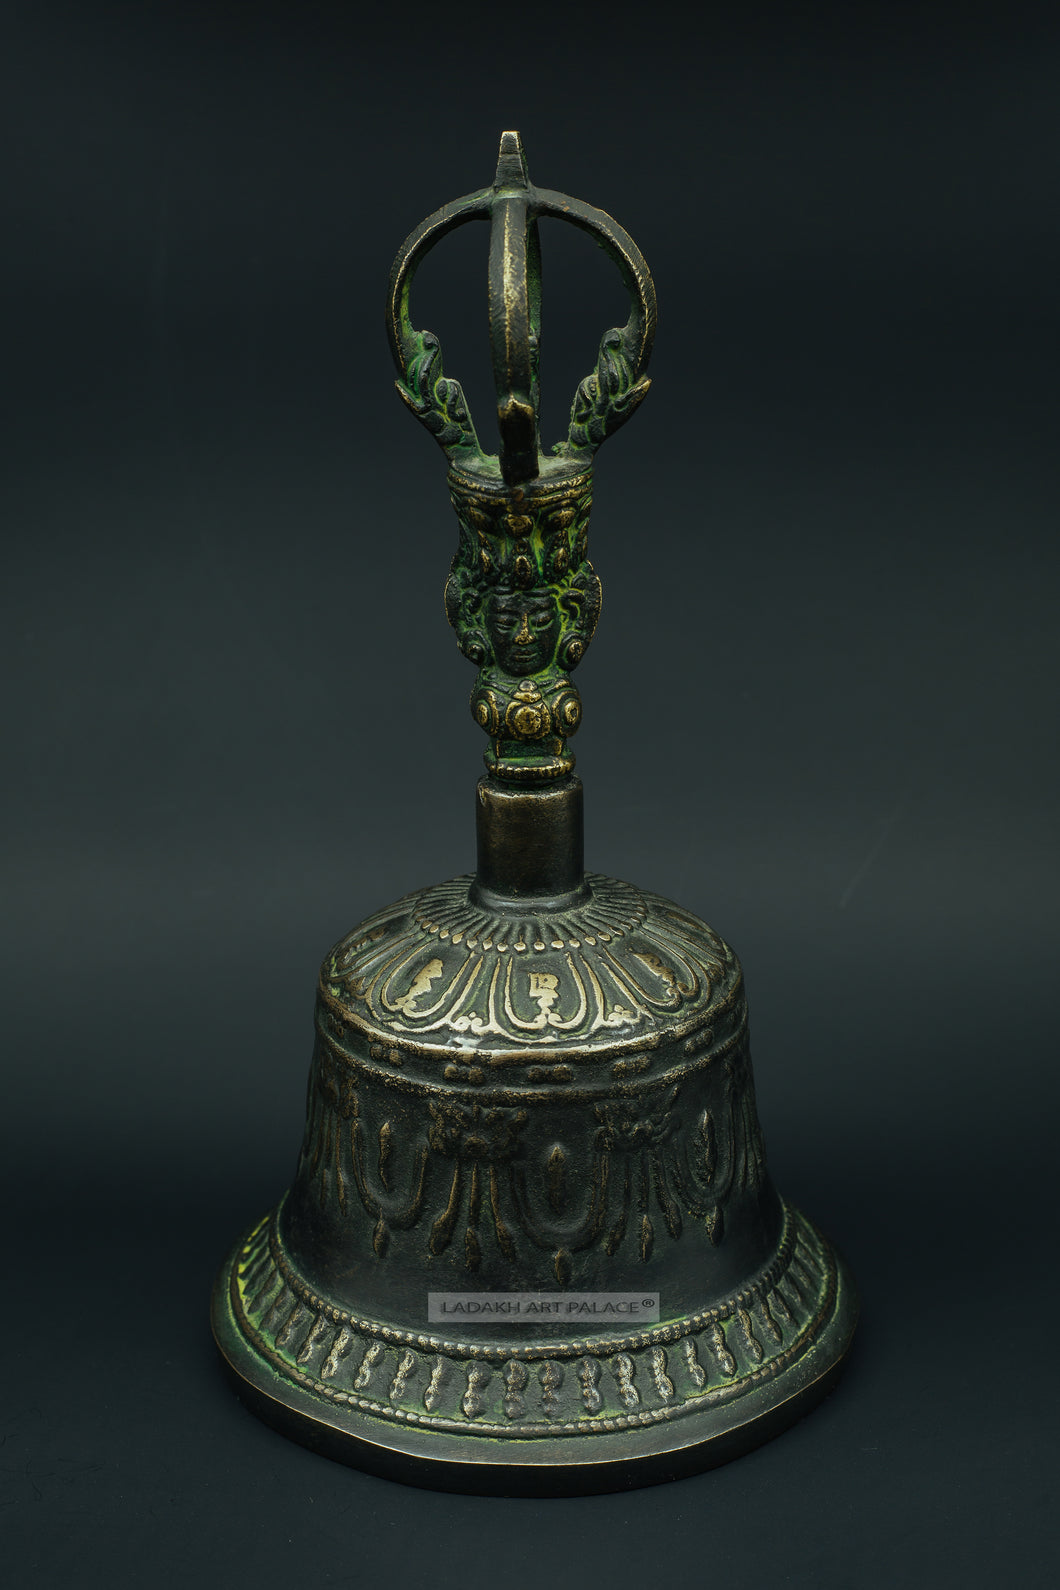 Old brass bell with Buddha face - the ladakh art palace